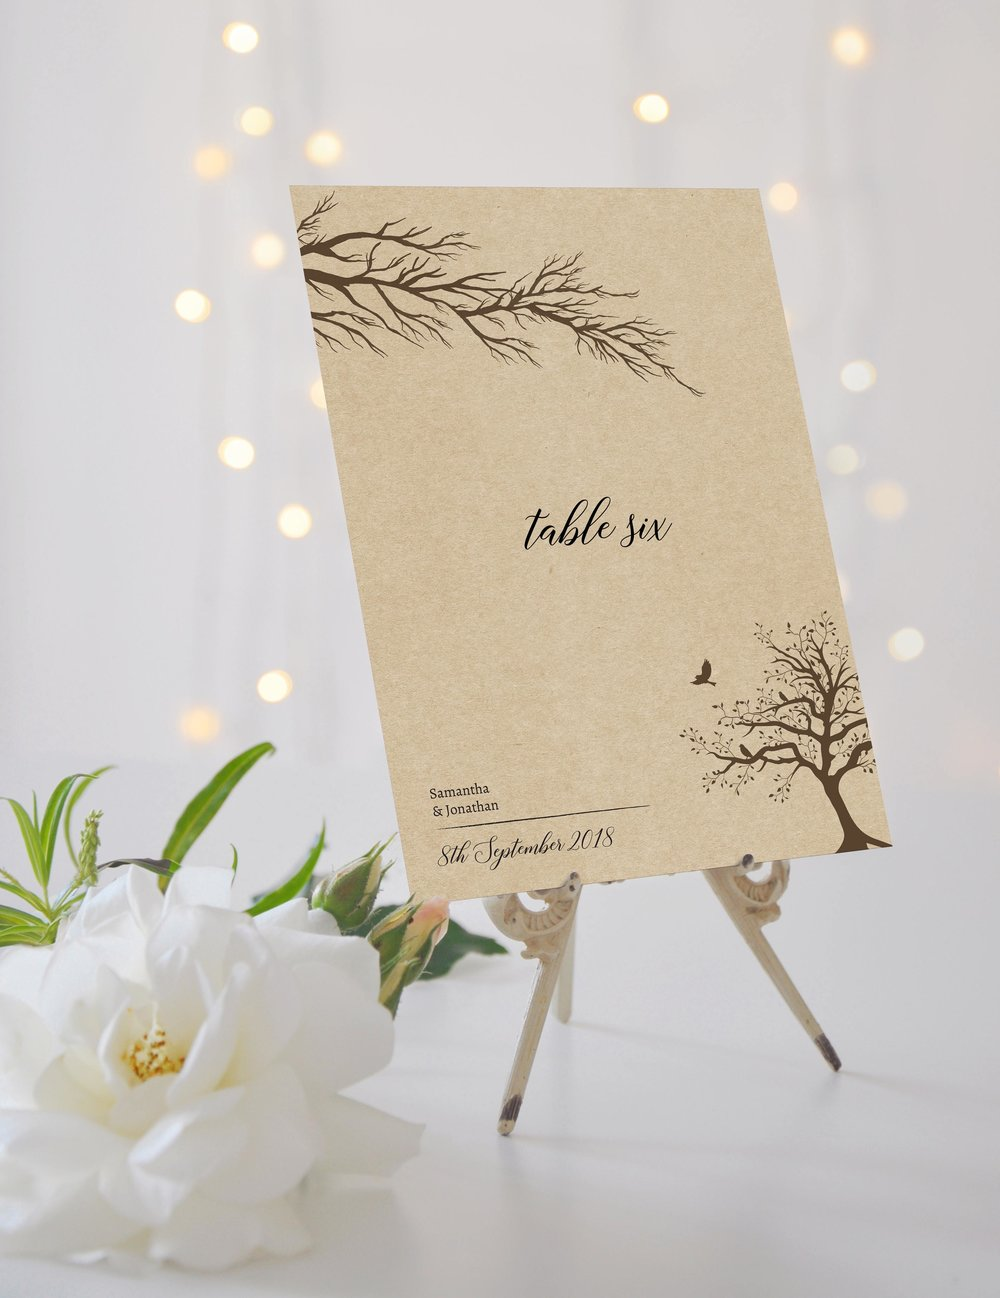 Table Names / Numbers - Our table cards are printed in a large A5 format and double-sided, so guests always know where they need to take their seat. You can opt for either standard numbering or creative naming; it's entirely up to you.